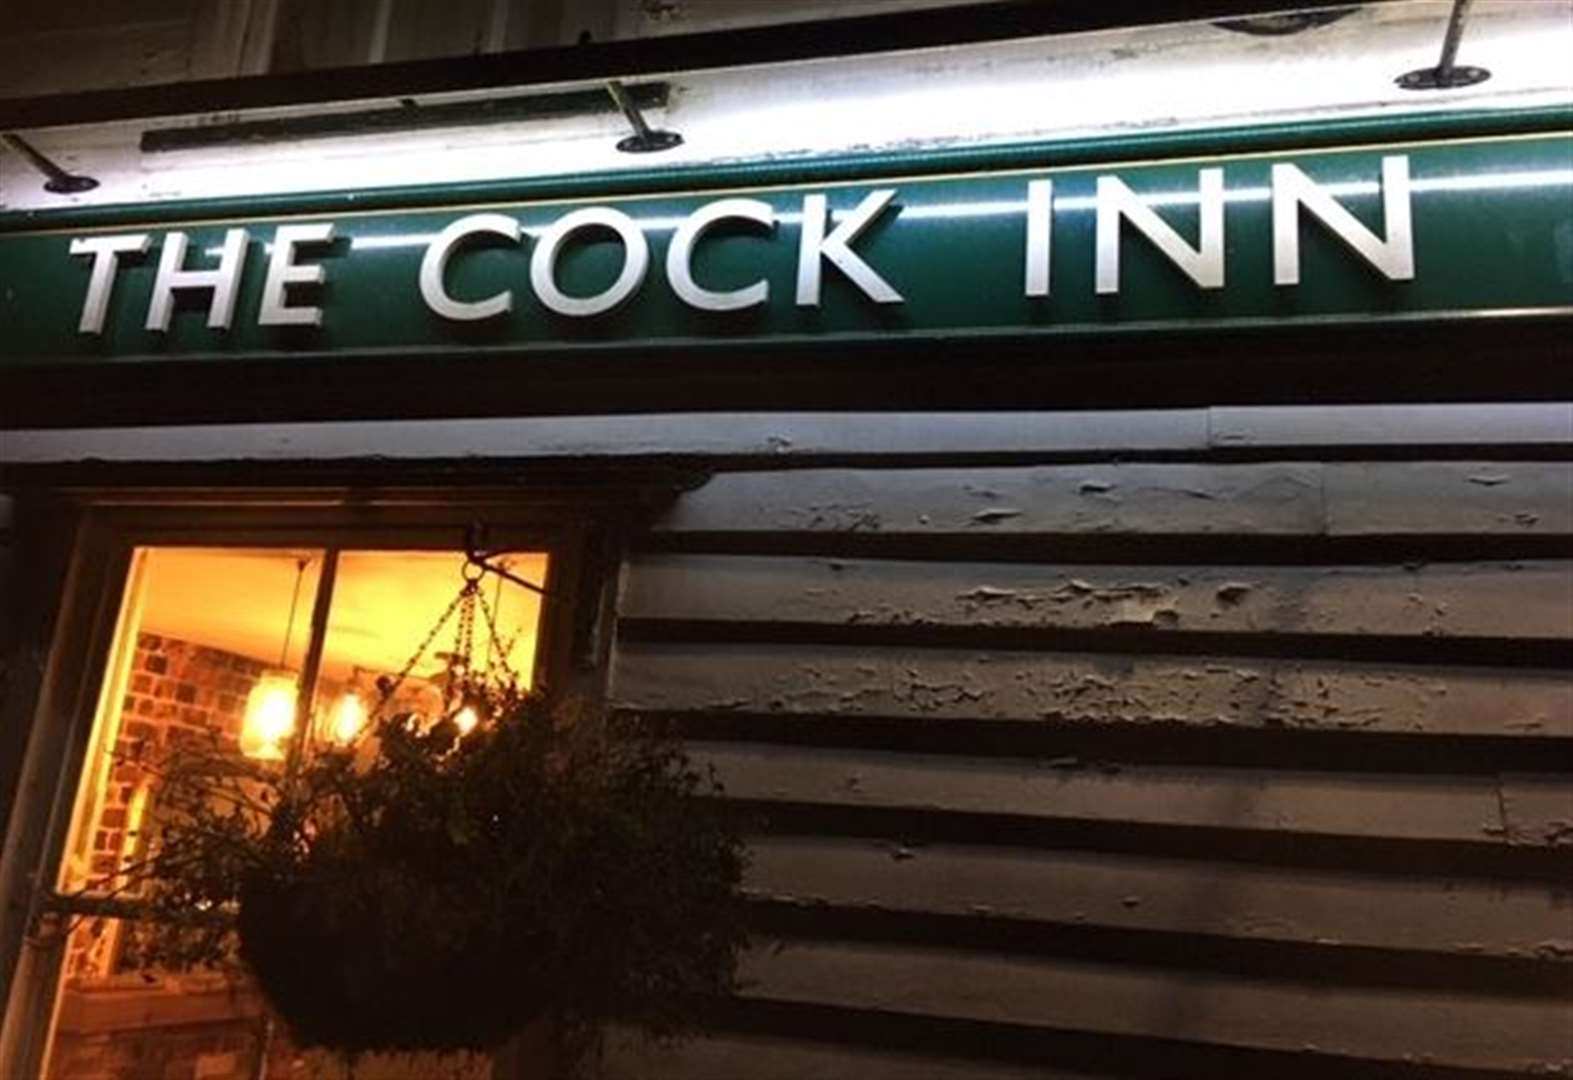 Hot stuff! Secret Drinker finds a proper pub with roaring log fire